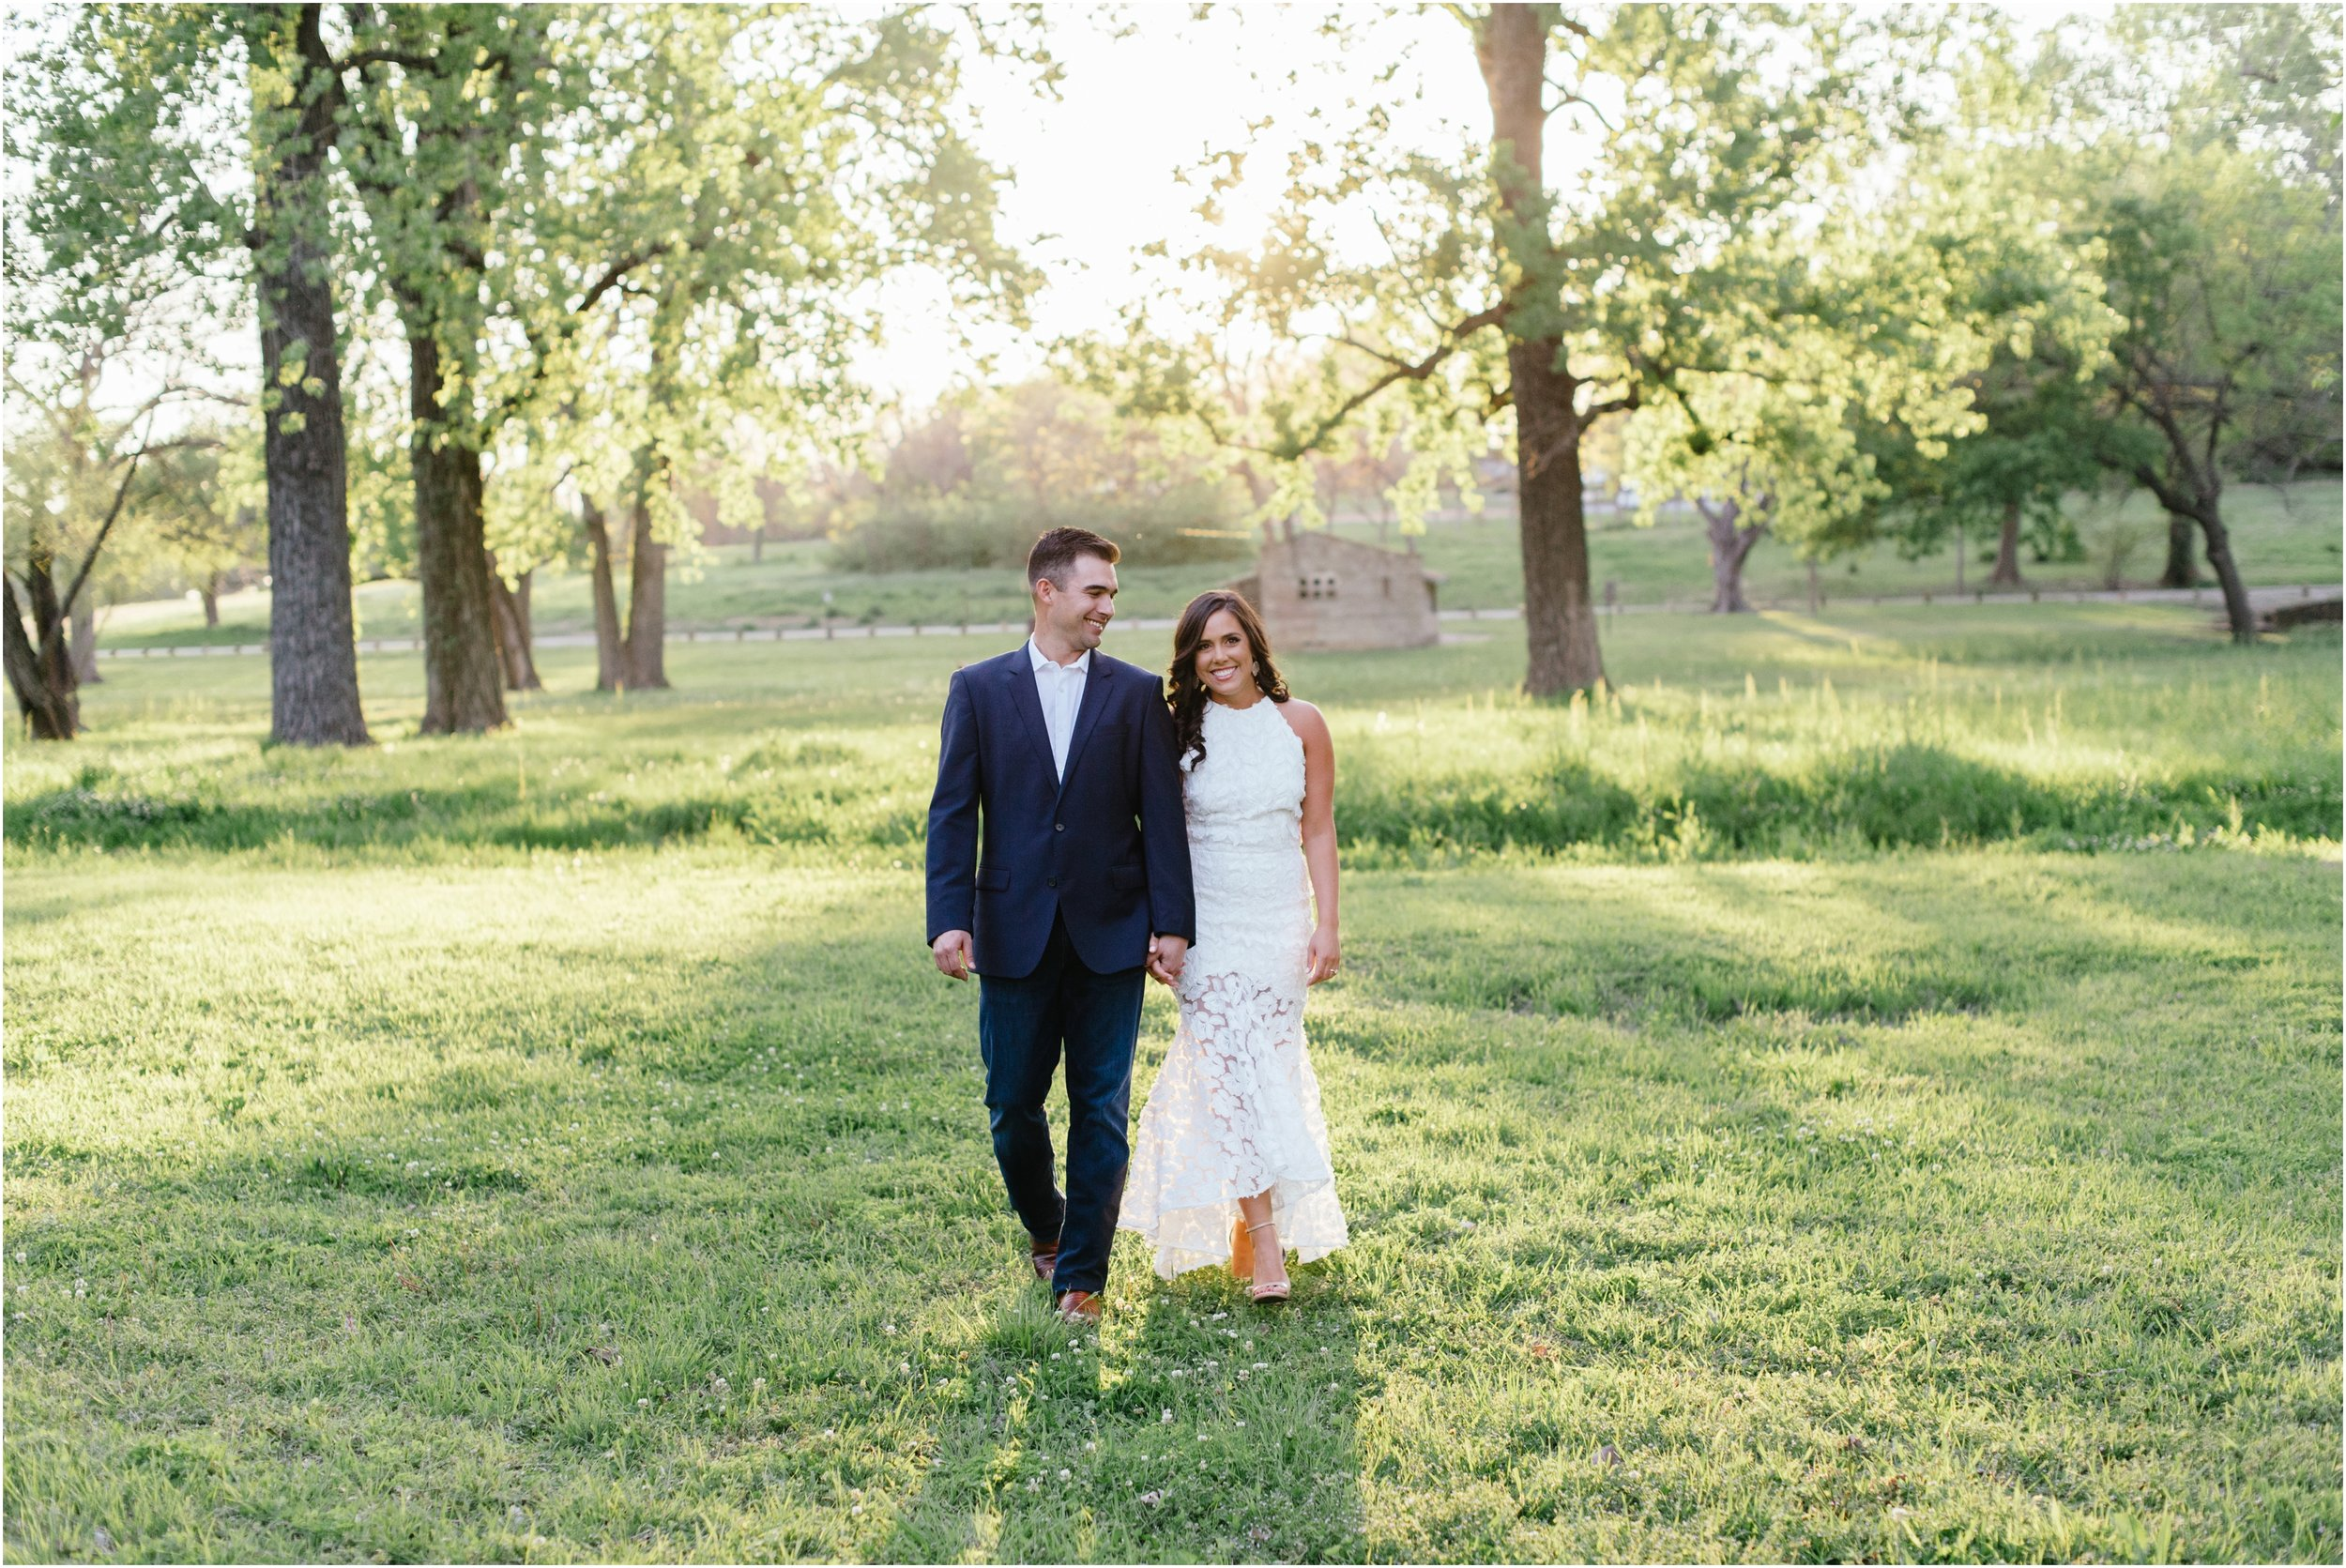 dallasweddingphotographer_texasweddingphotographer_texasweddingphotographers_dallasweddingphotographer_mattandjulieweddings_0861.jpg